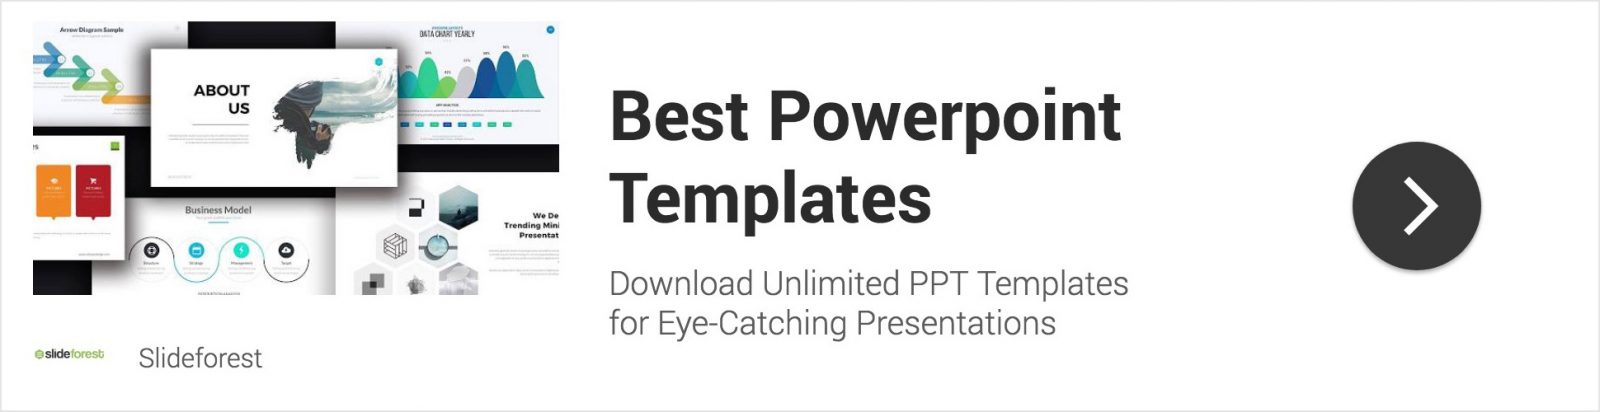 25+ Free Business Powerpoint Templates for Presentations